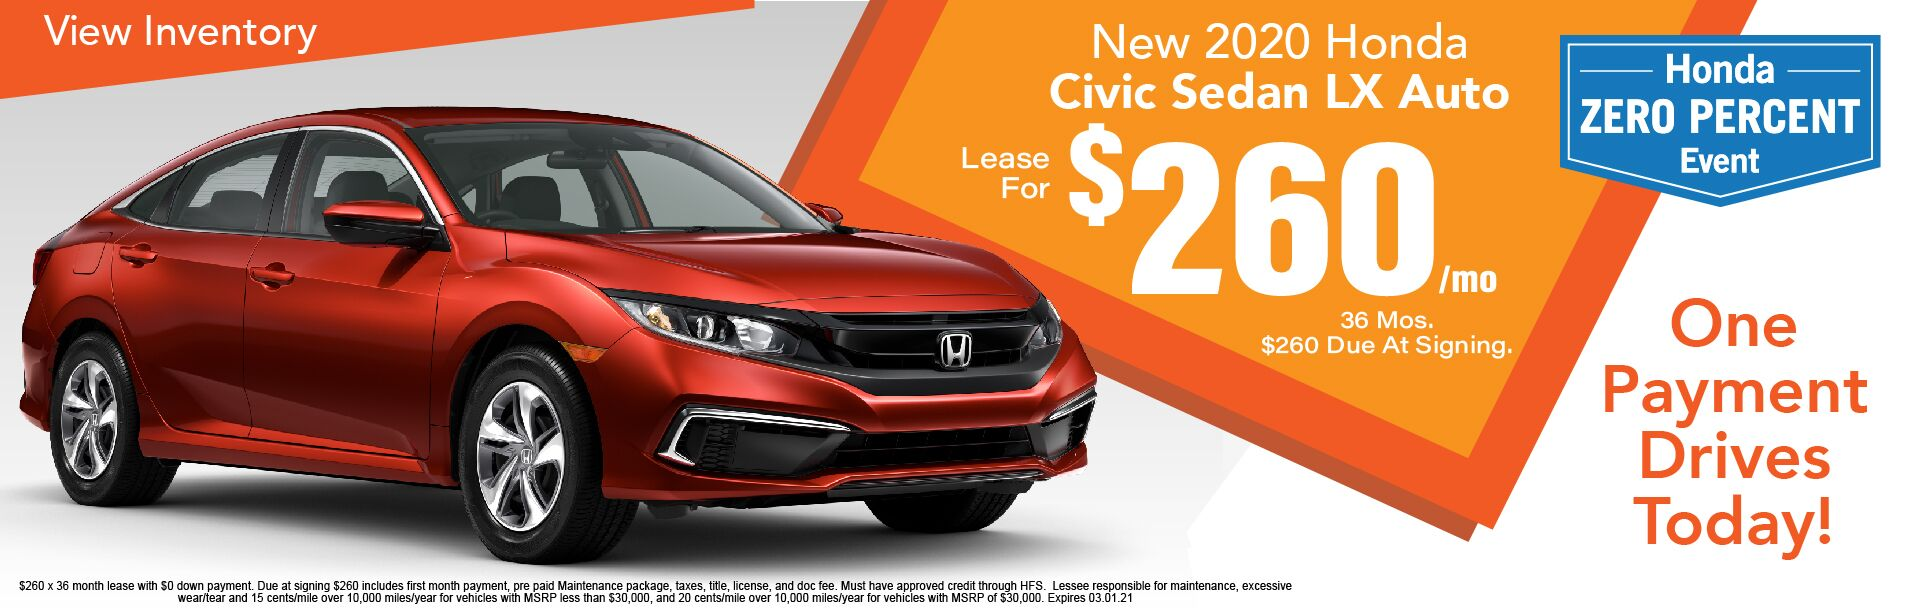 2020 Honda Civic Sedan LX Auto $260/Month Leased x 36 Months